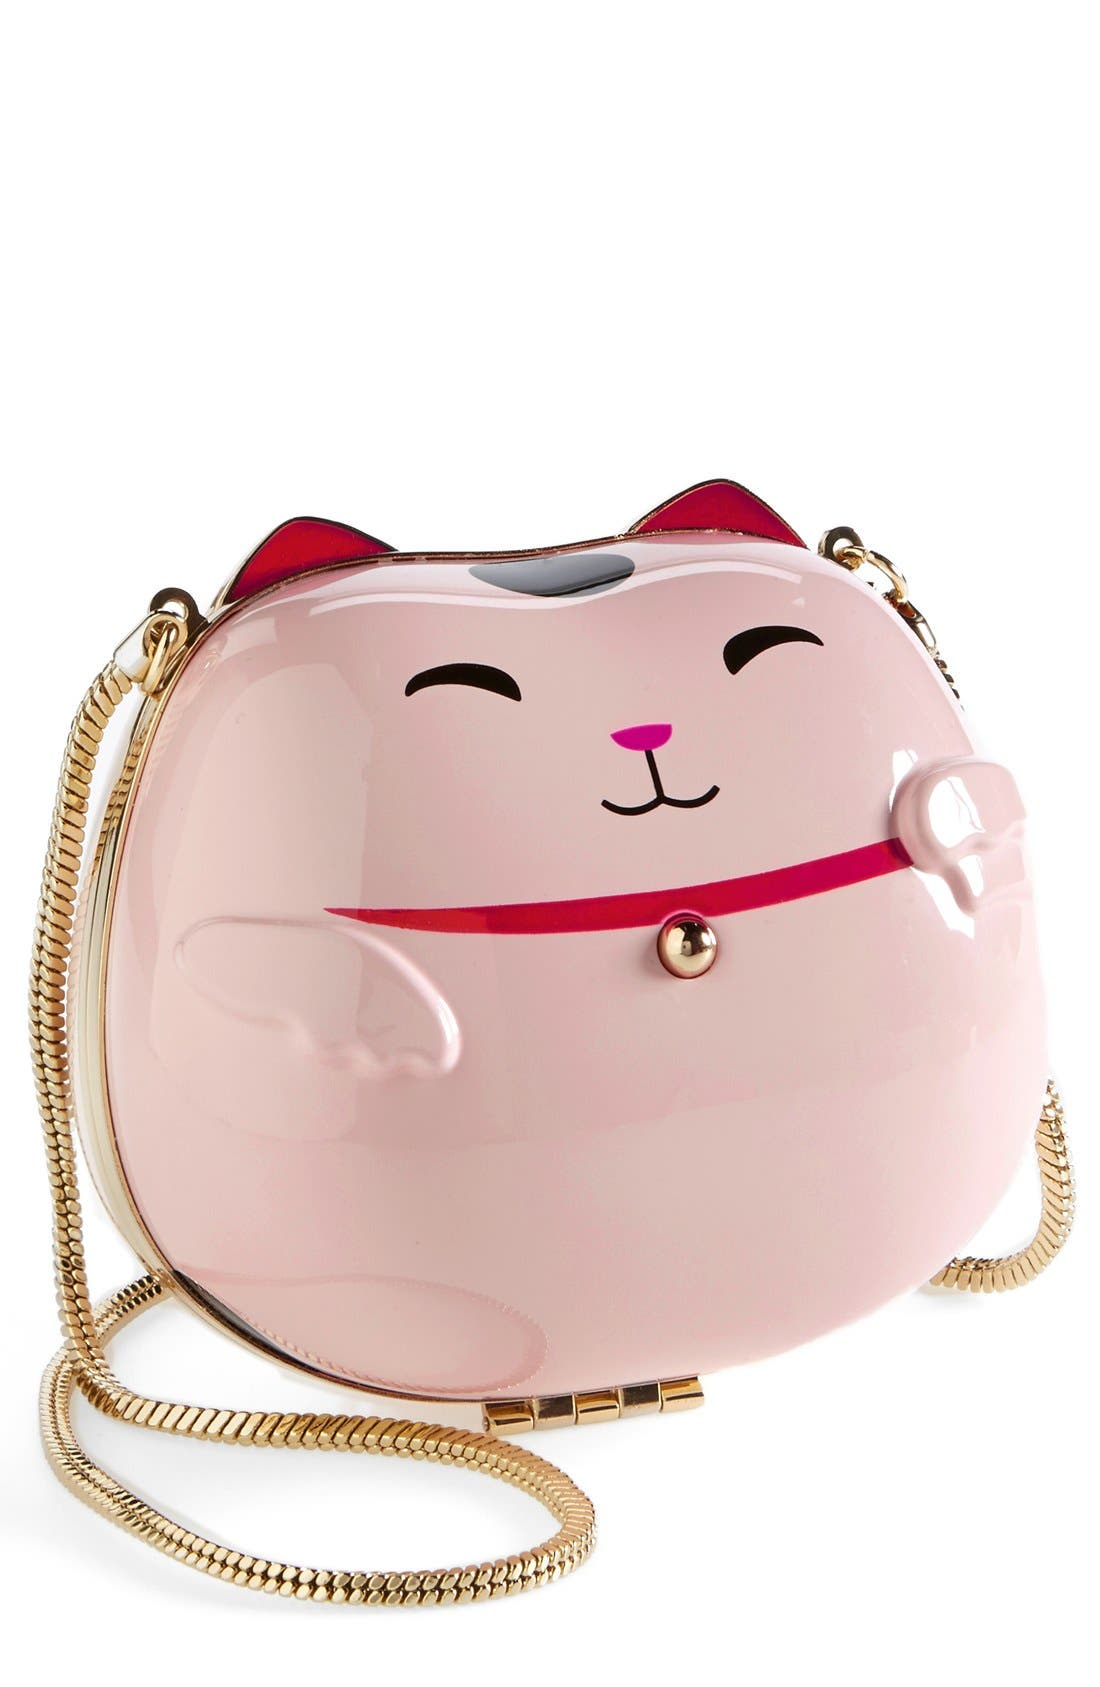 Main Image - kate spade new york 'hello tokyo cat' clutch